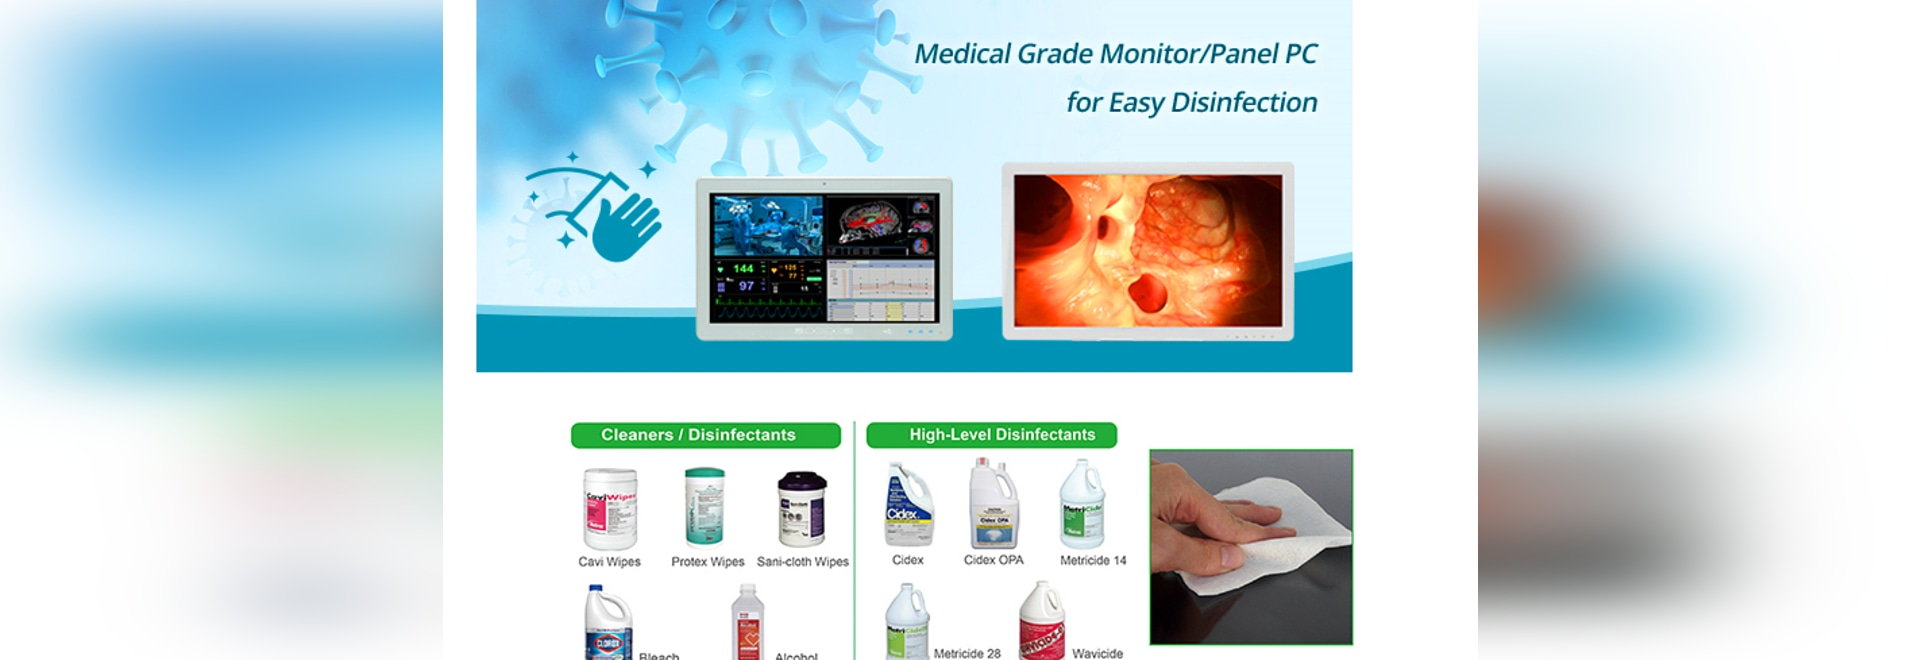 Is the PC/Monitor Used in Your Hospital Sterilizable?